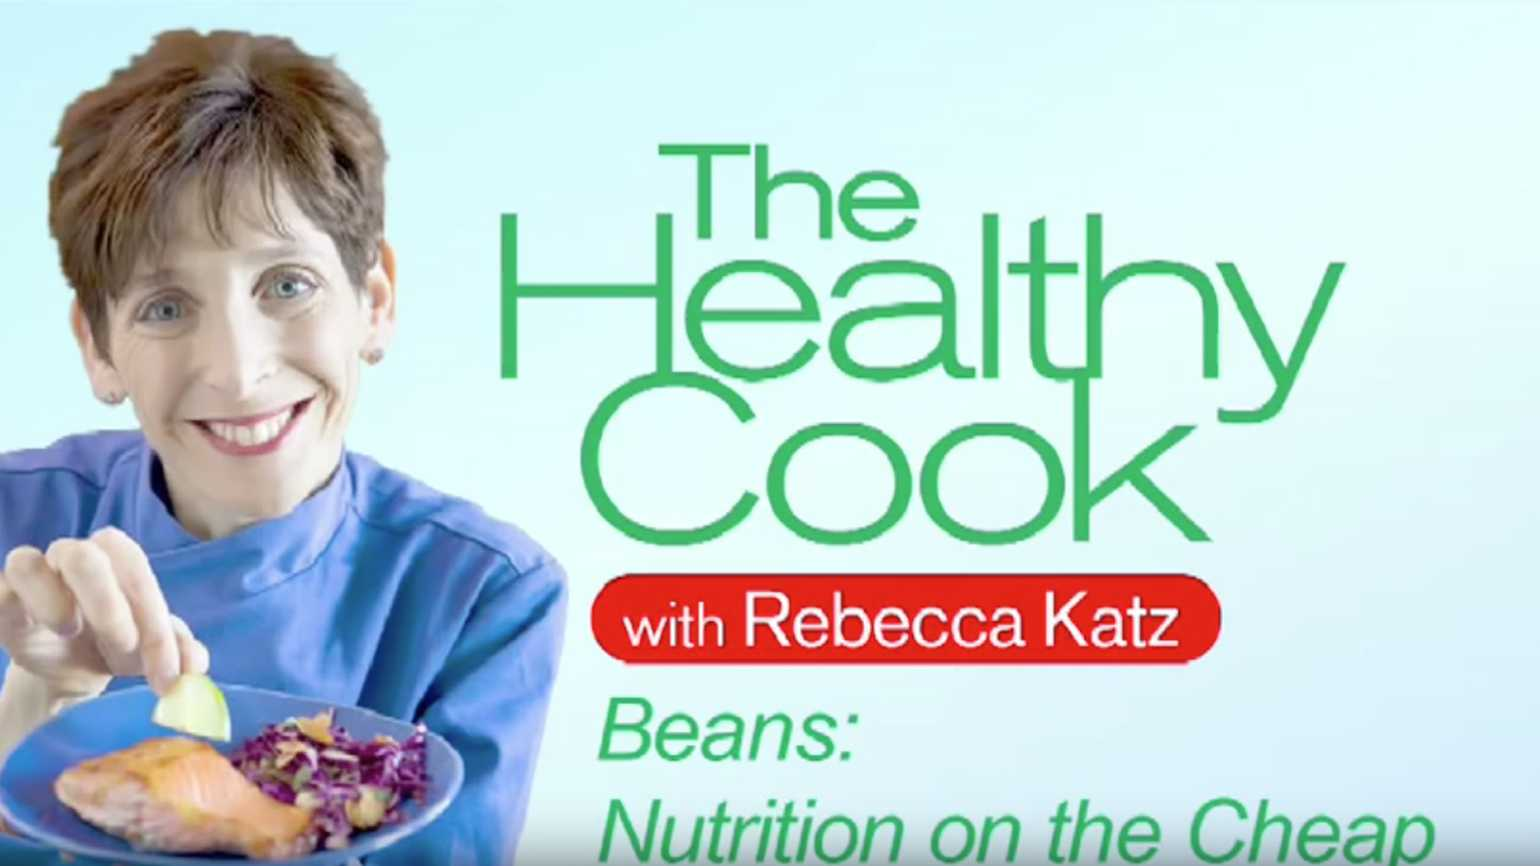 The Healthy Cook: The Benefits of Beans